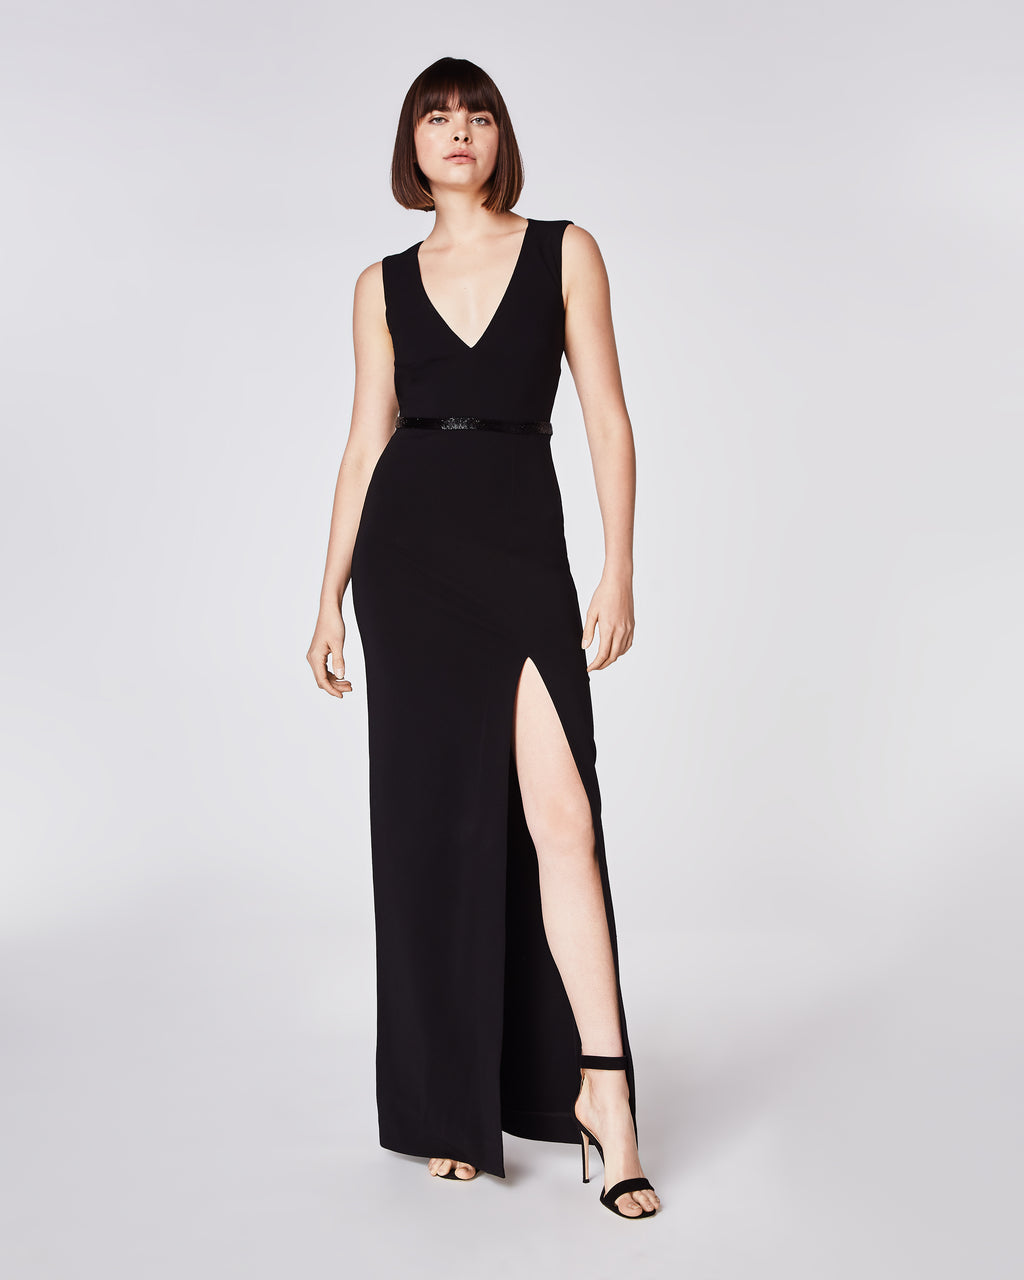 CK10069 - STRUCTURED HEAVY JERSEY V NECK OPEN BACK GOWN - dresses - long - The only black tie dress you will ever need. This black jersey gown features a thigh high slit and deep v-neckline, complimented with a beaded waistline. Finished with an open back, this dress is fully lined and features a concealed zipper forclosure.